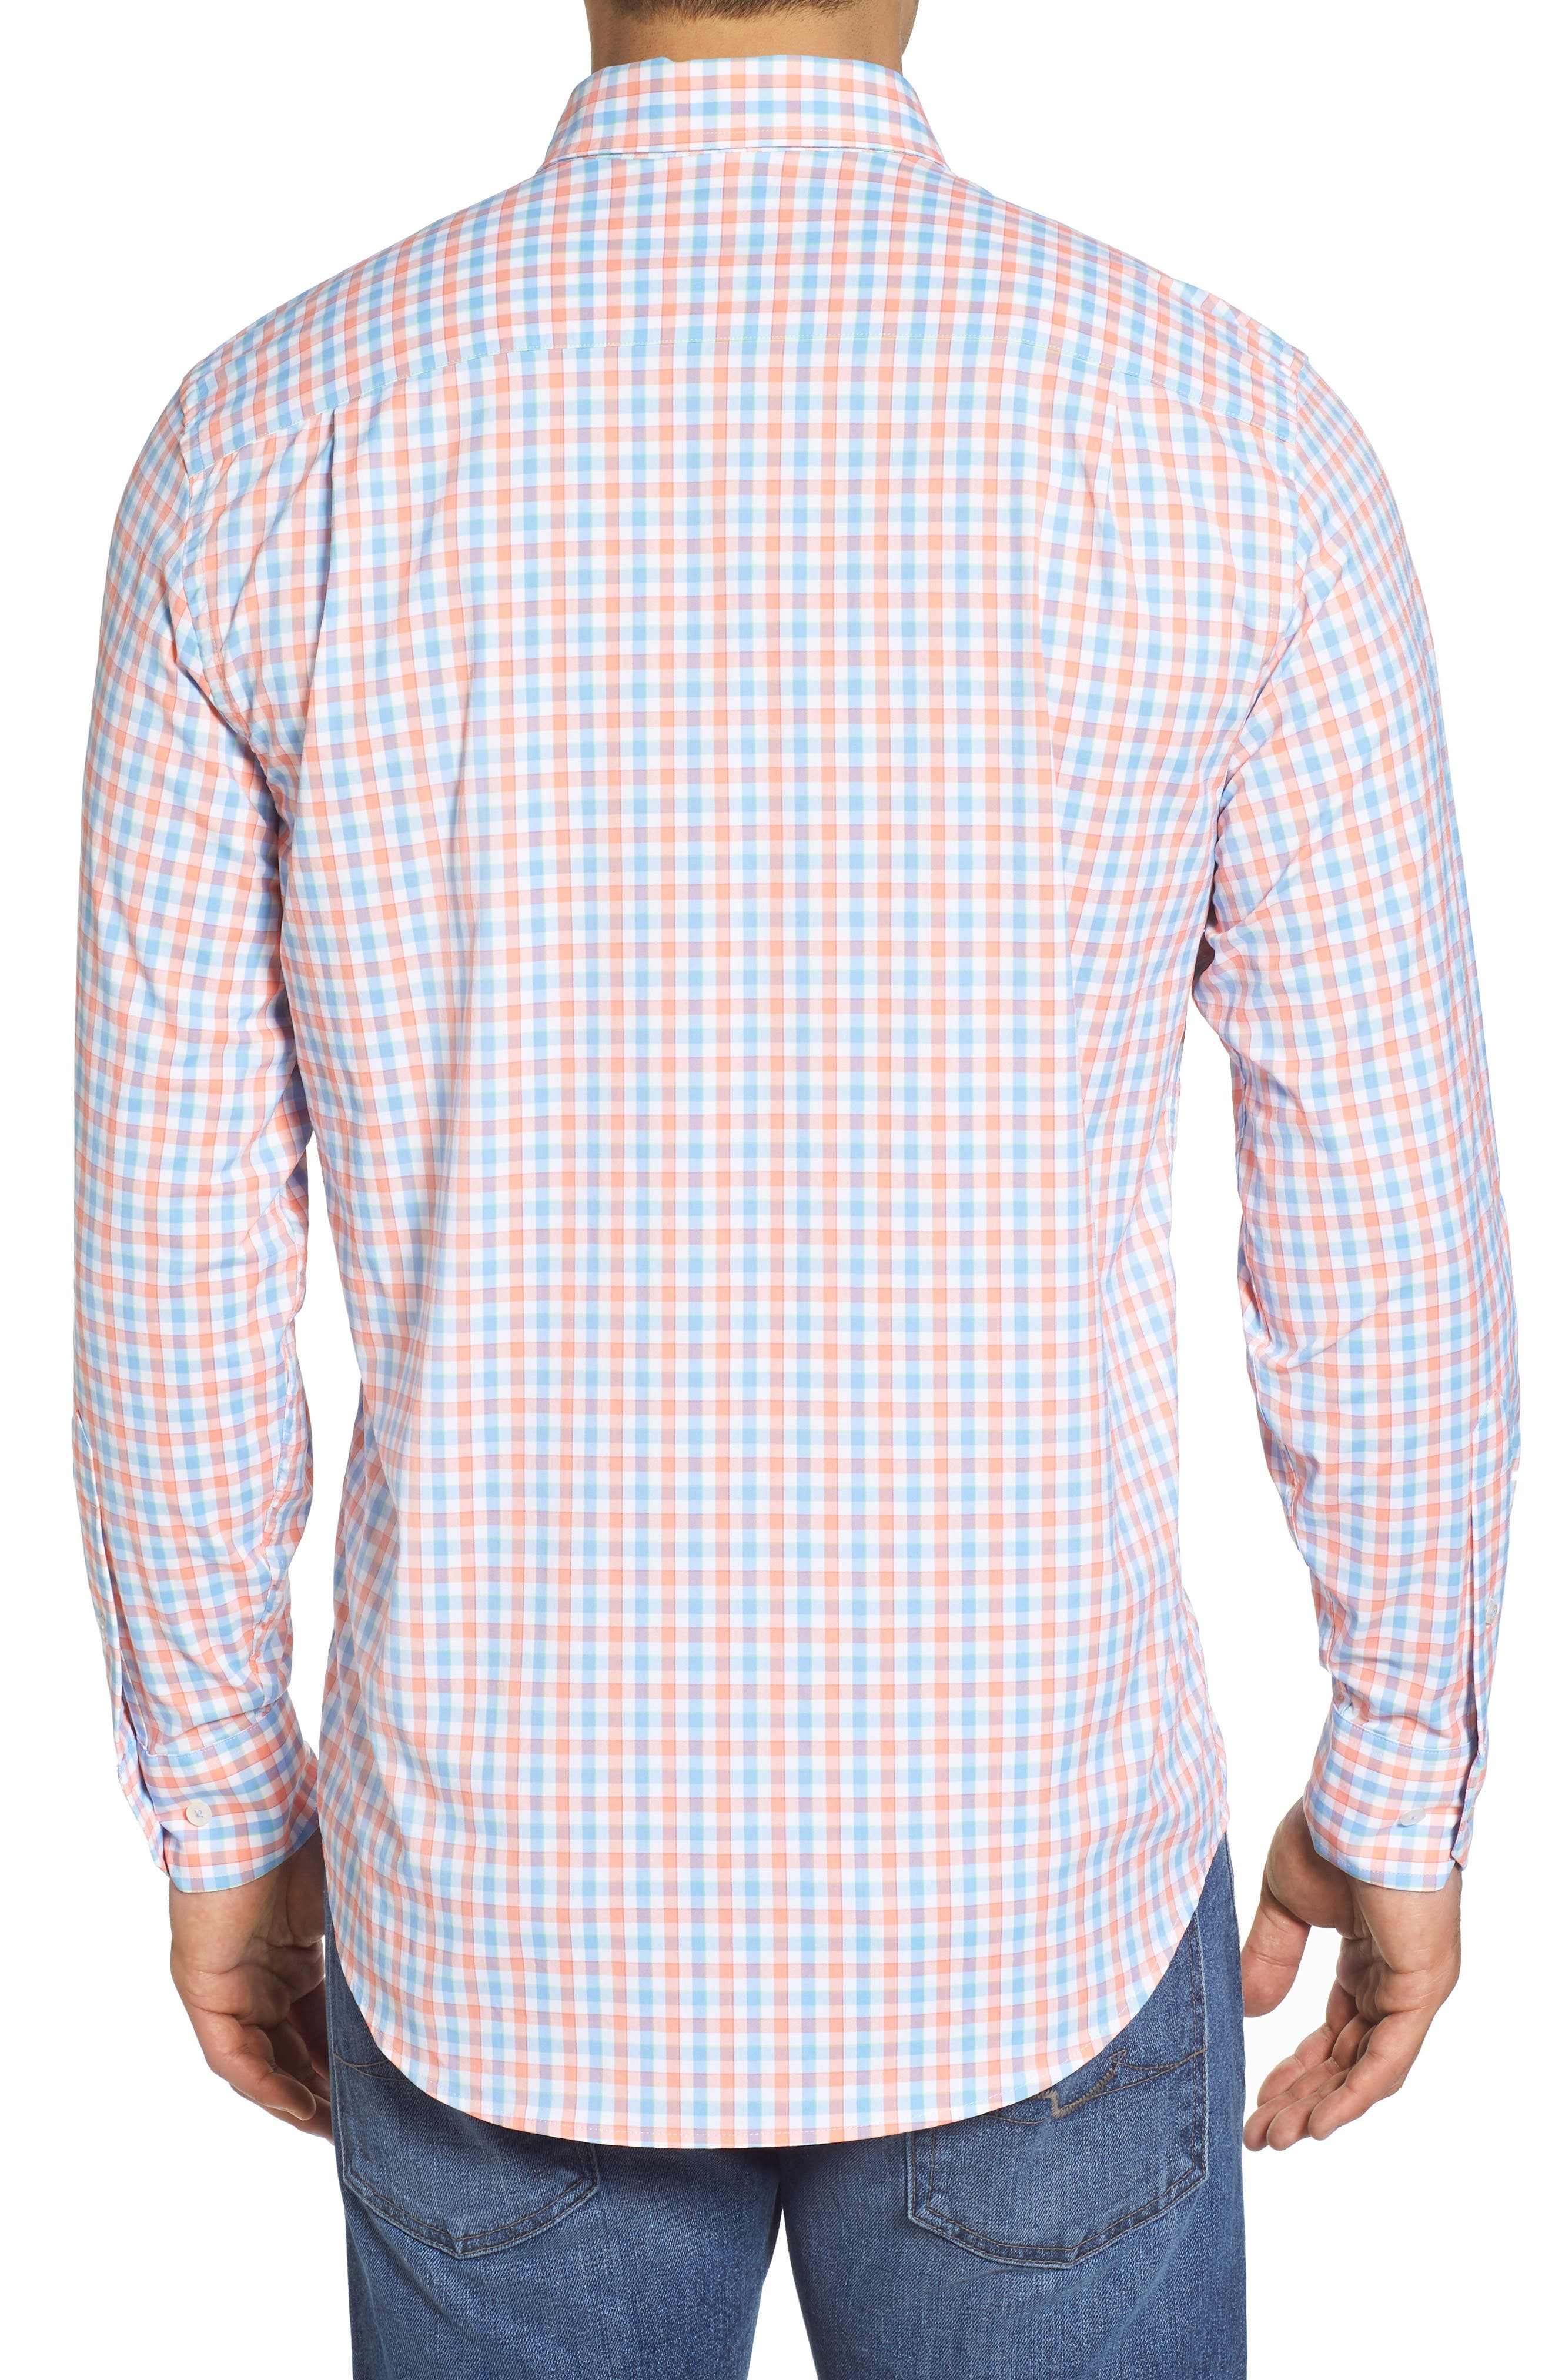 Market Square Regular Fit Stretch Check Sport Shirt,                             Alternate thumbnail 2, color,                             Nectar Coral